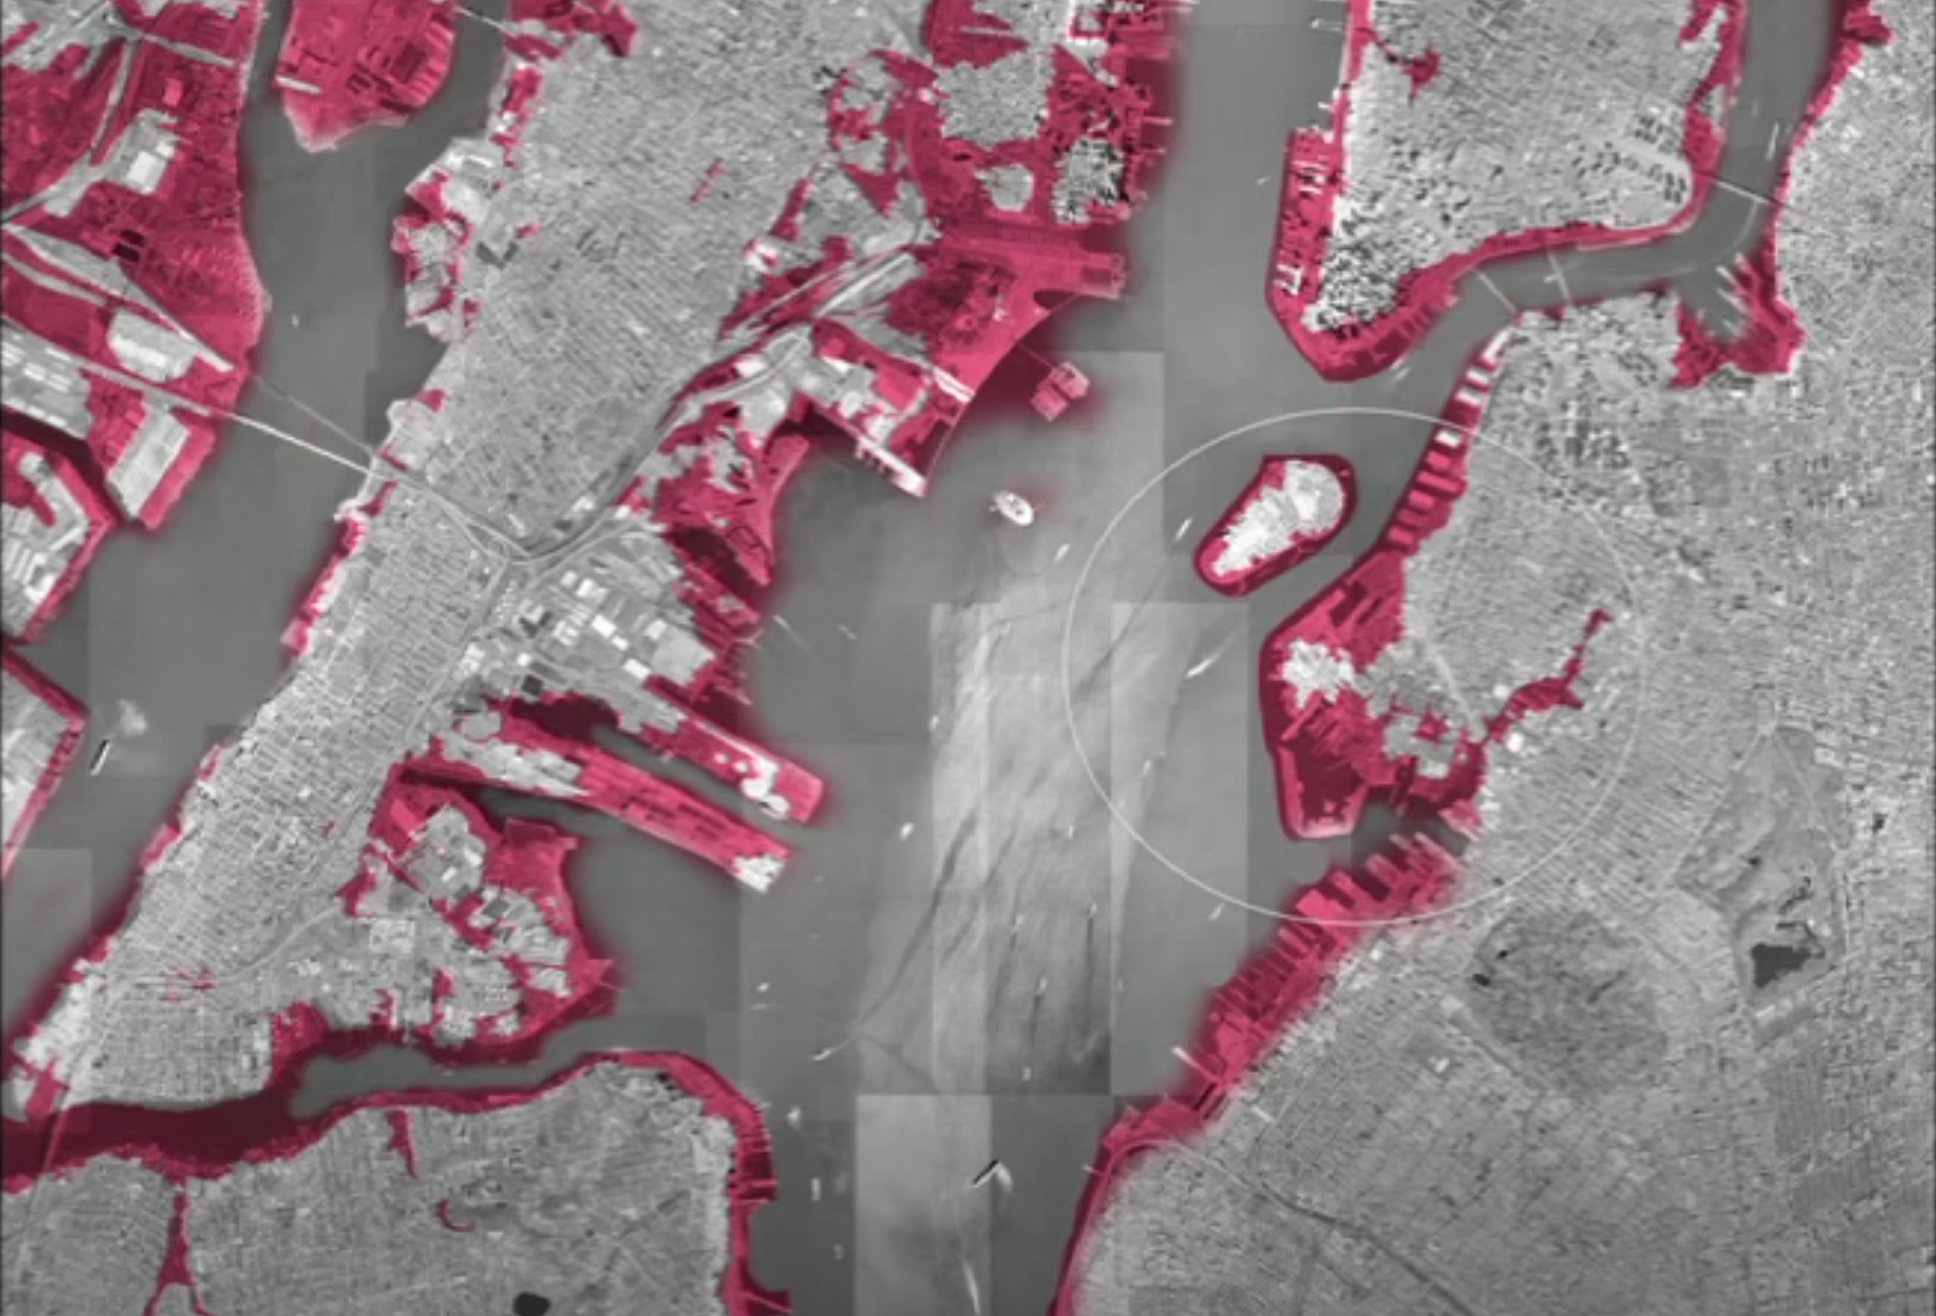 Reviving New York's rivers - with oysters